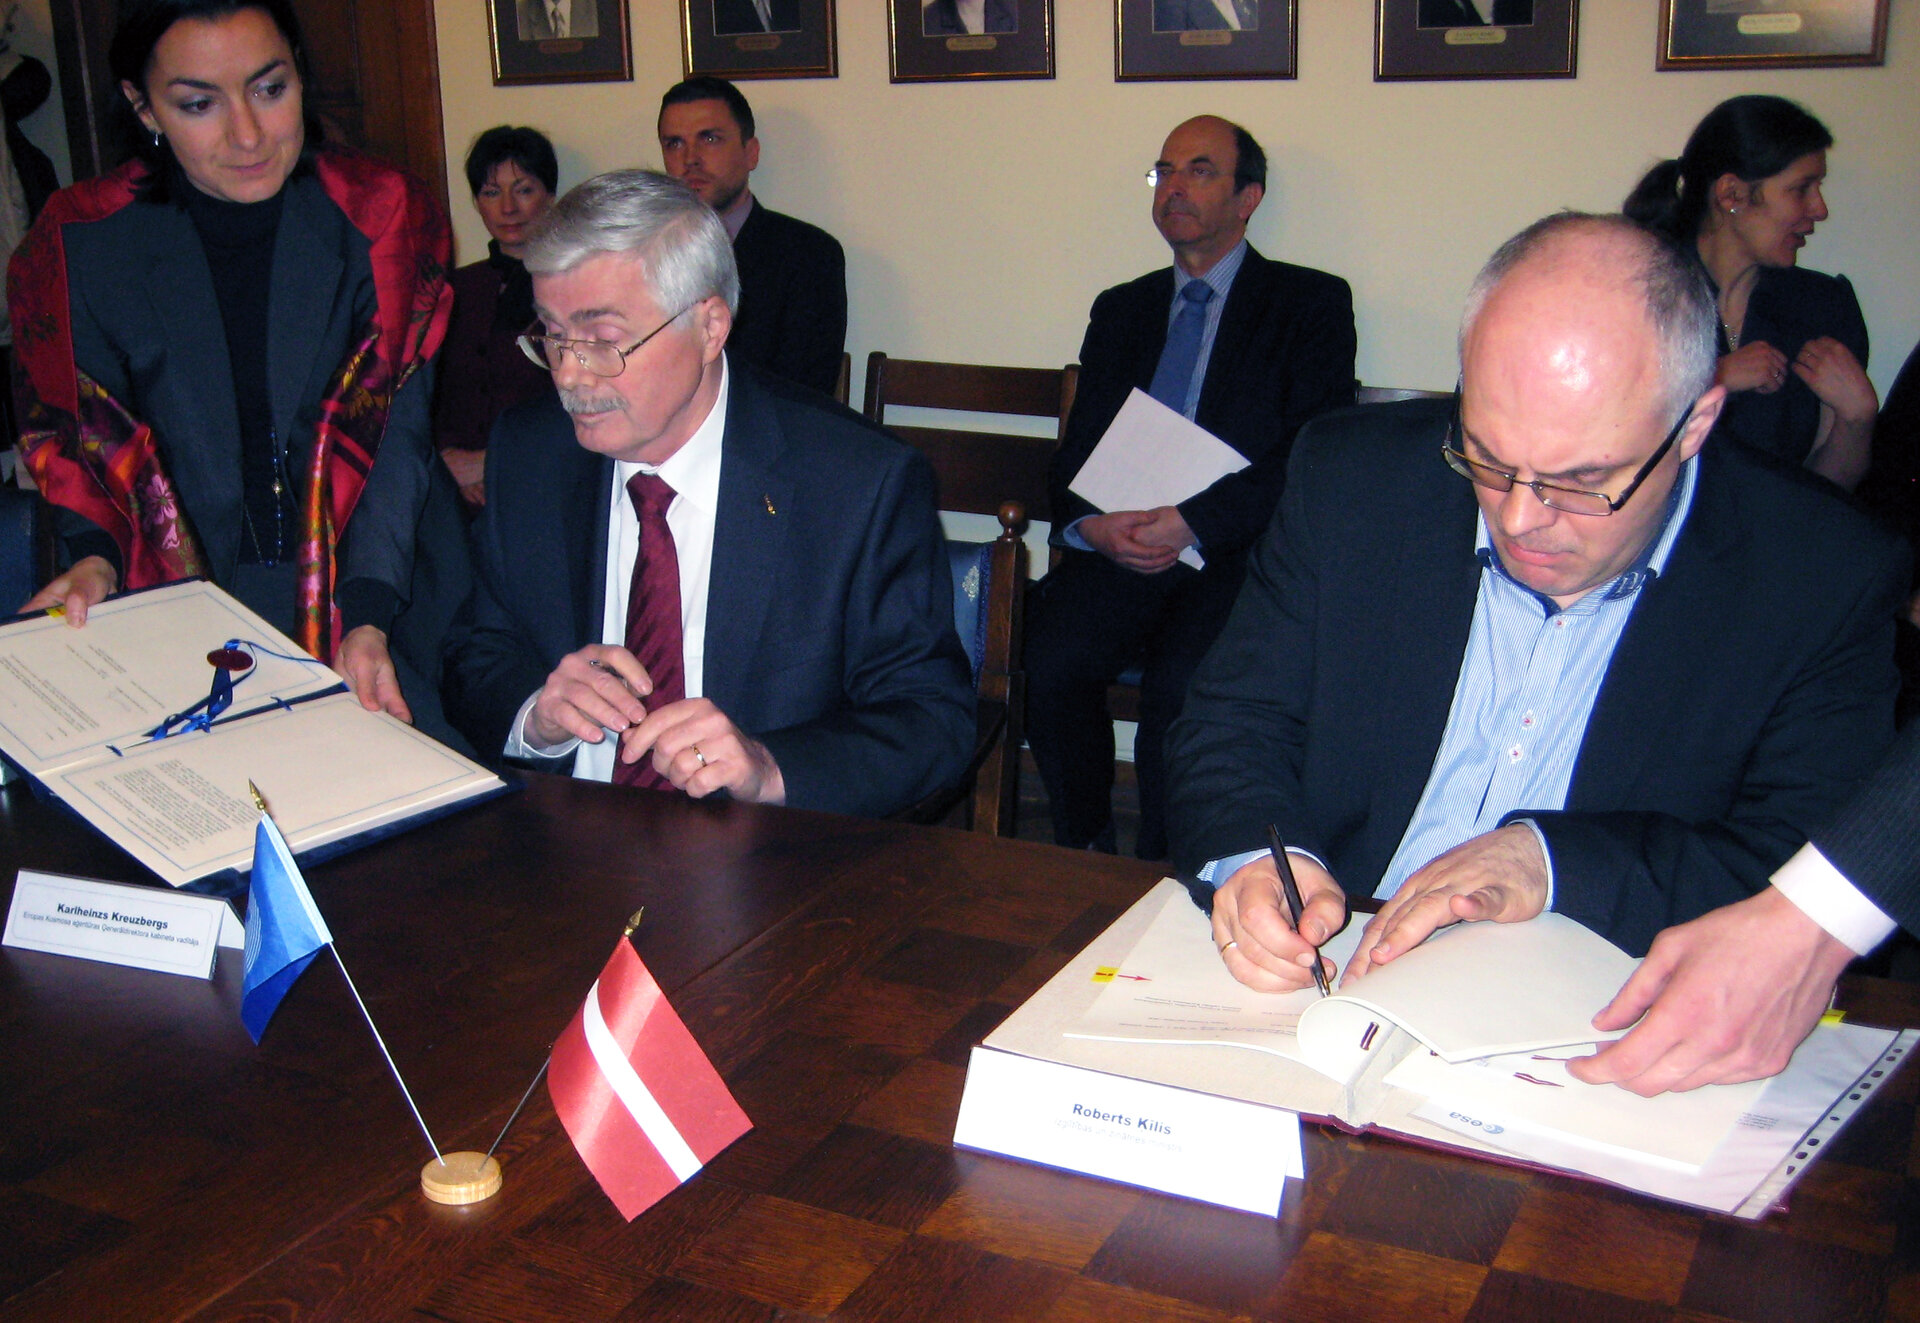 Signing the ECS agreement in Riga, Latvia